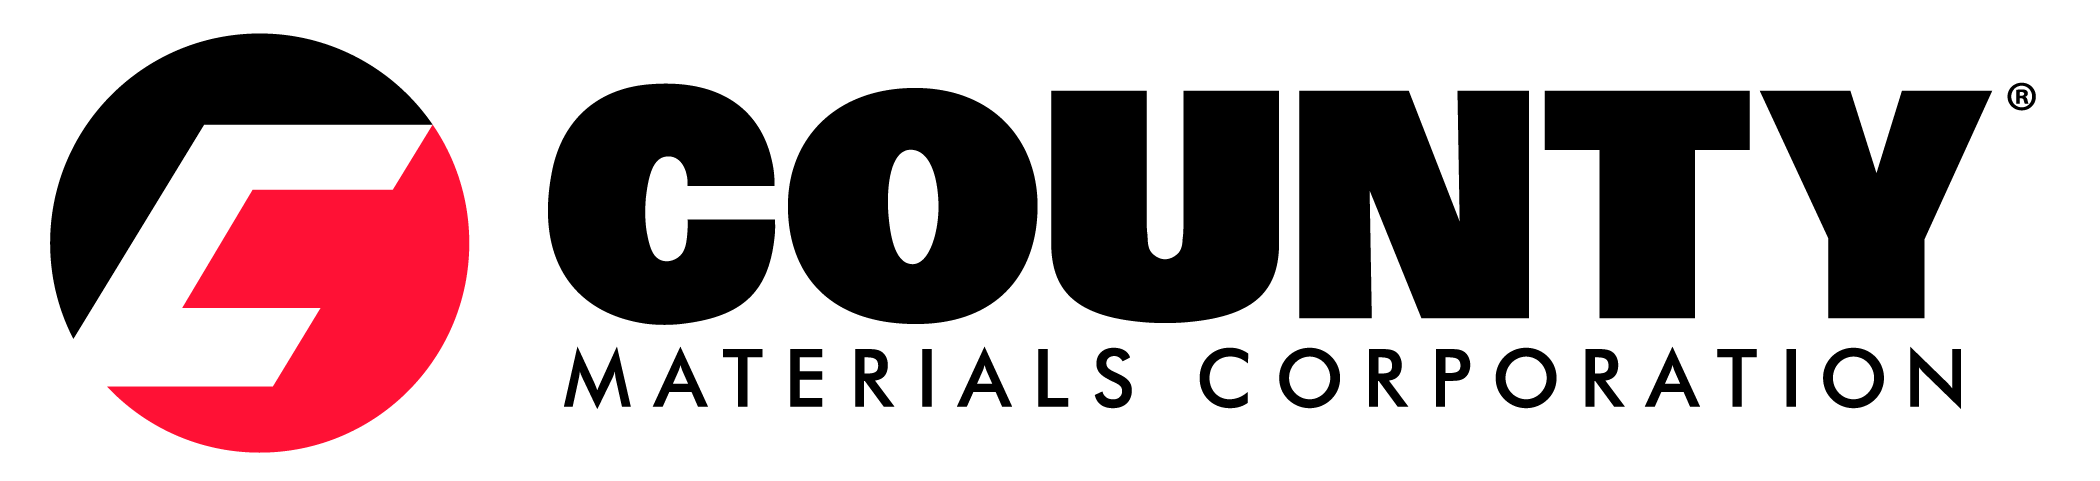 County Materials Corporation